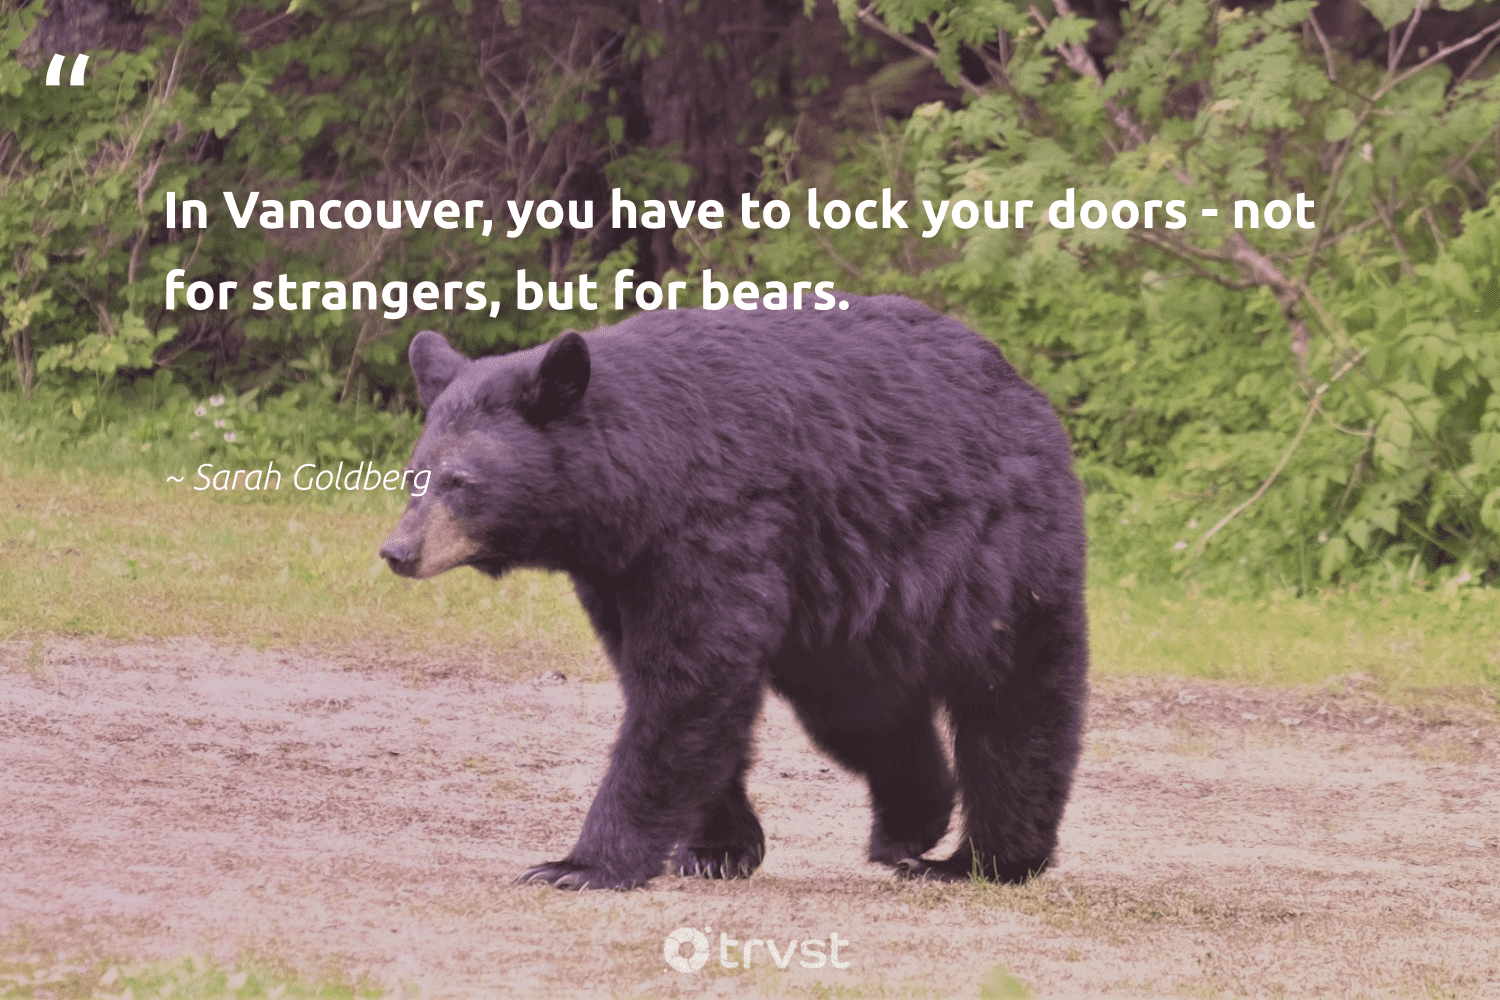 """""""In Vancouver, you have to lock your doors - not for strangers, but for bears.""""  - Sarah Goldberg #trvst #quotes #bears #bear #collectiveaction #majesticwildlife #dogood #conservation #takeaction #bearlove #changetheworld #biodiversity"""